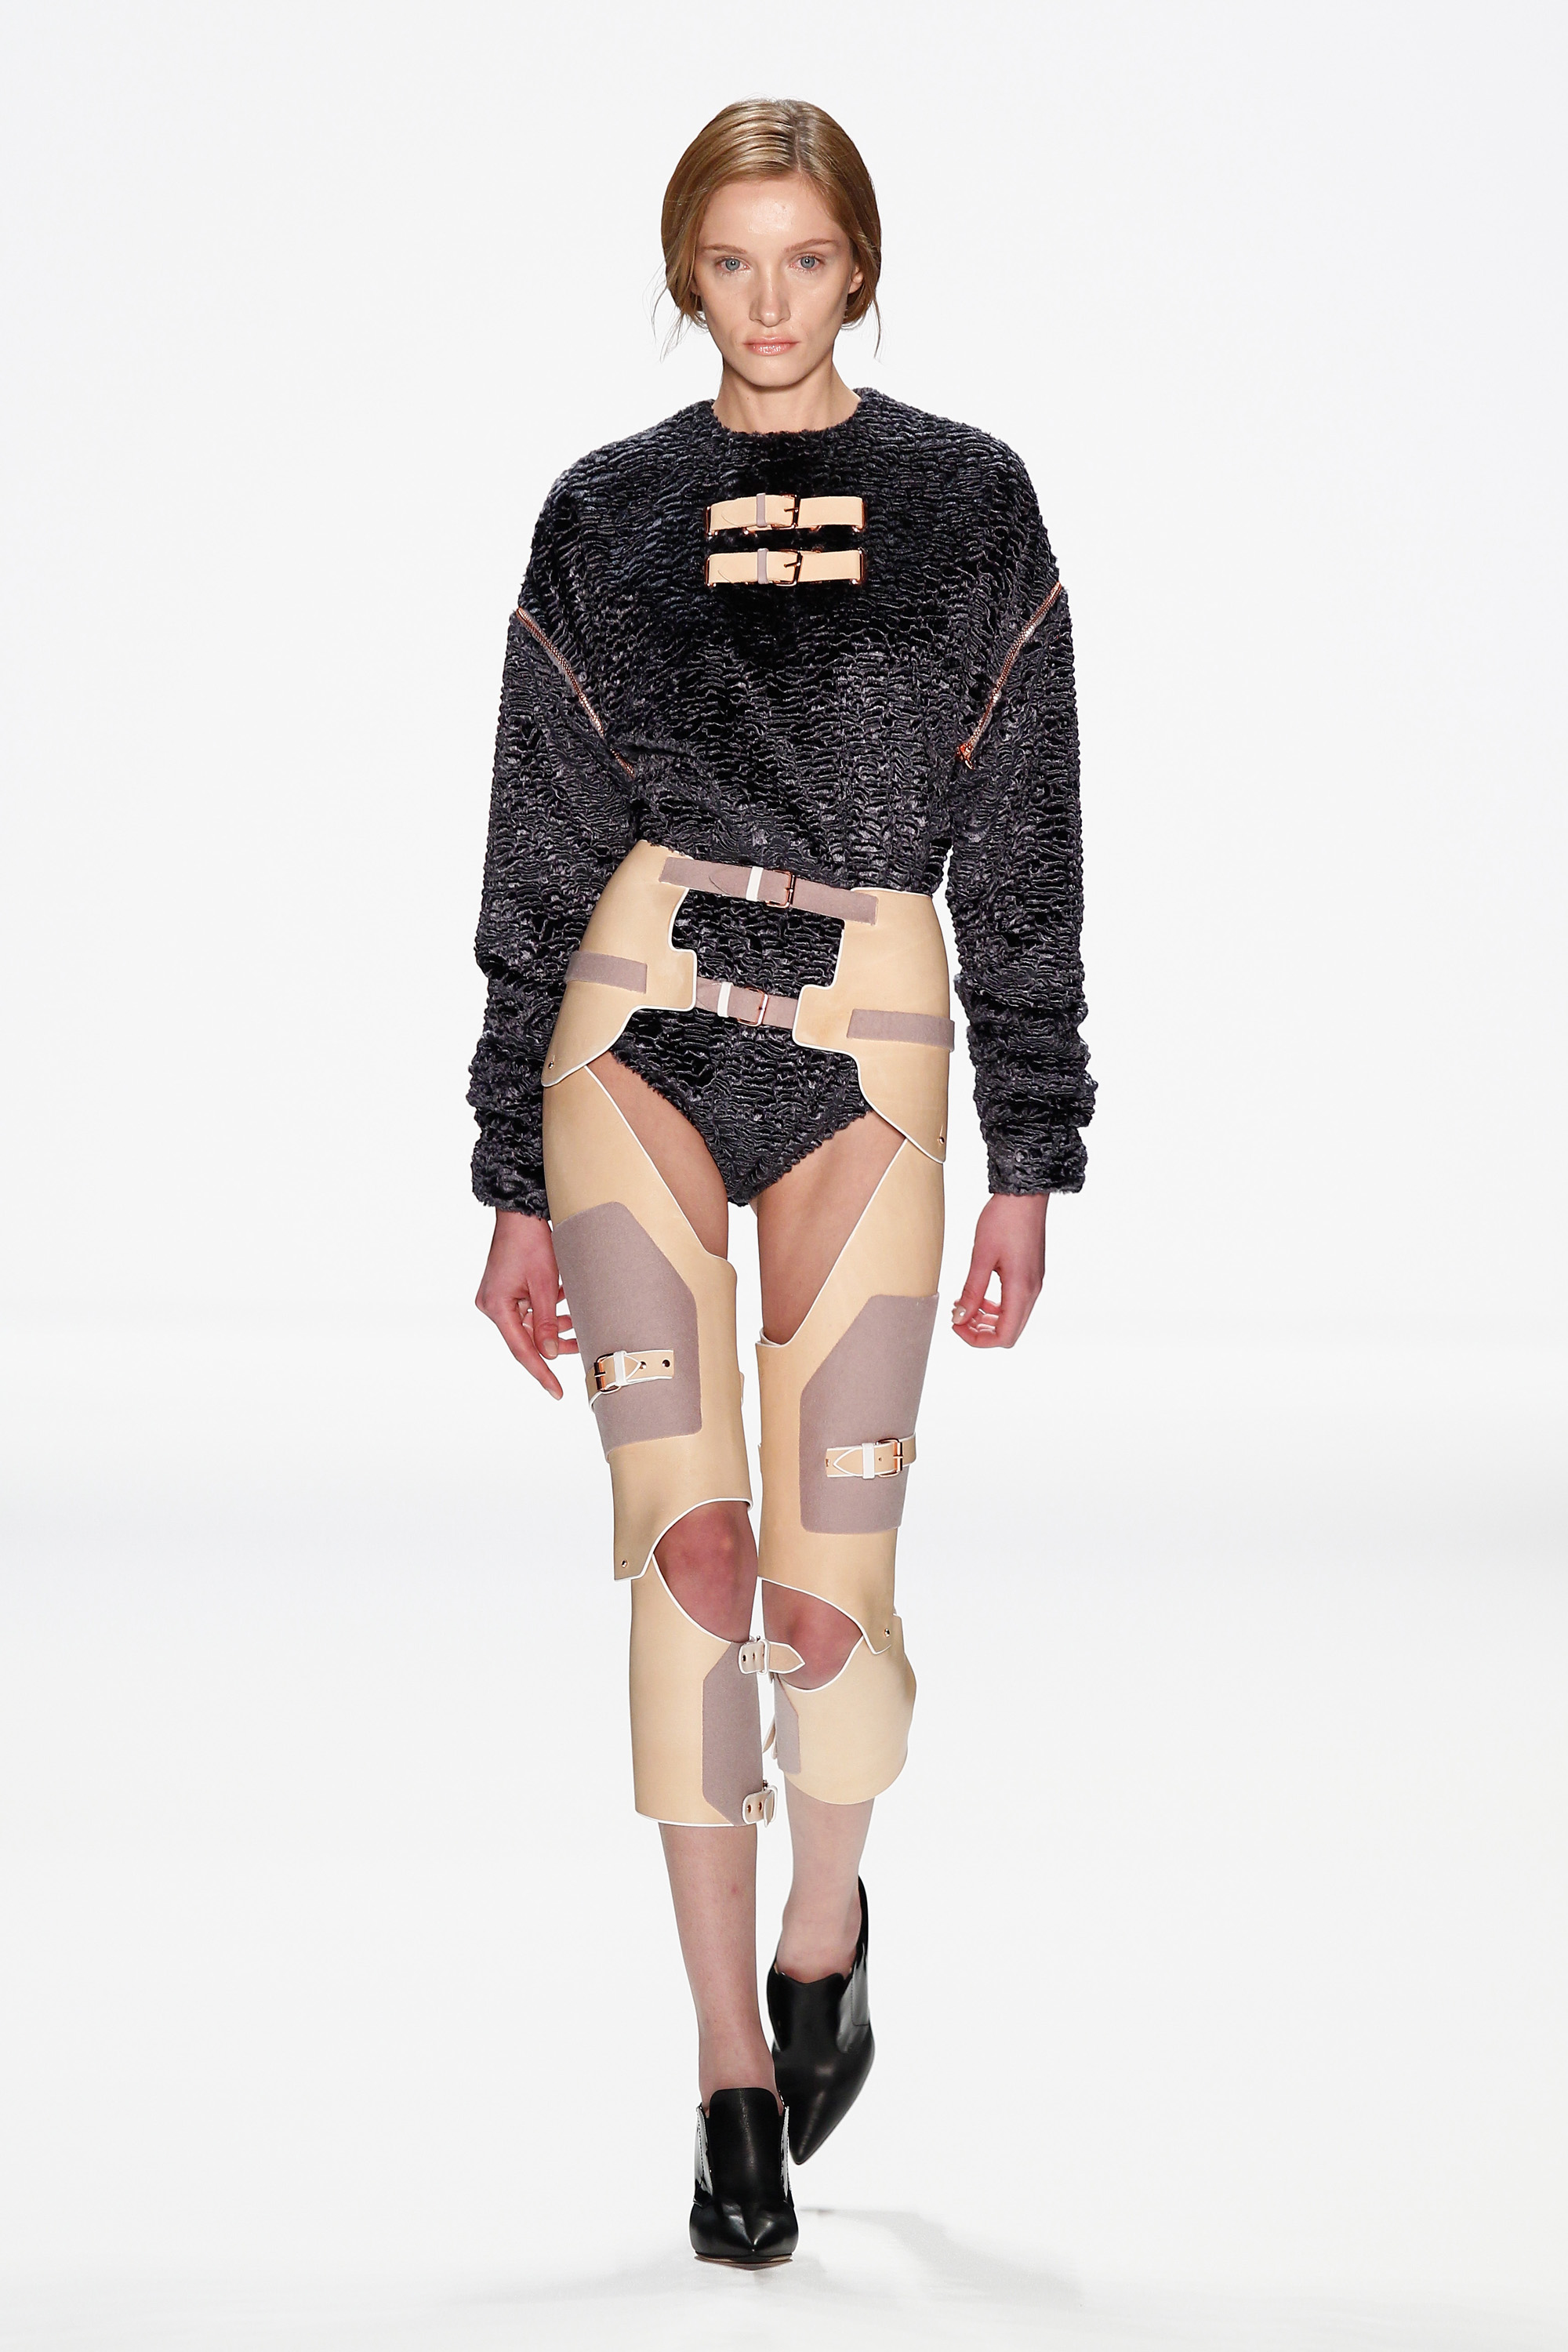 Marina Hoermanseder Show - Mercedes-Benz Fashion Week Autumn/Winter 2014/15